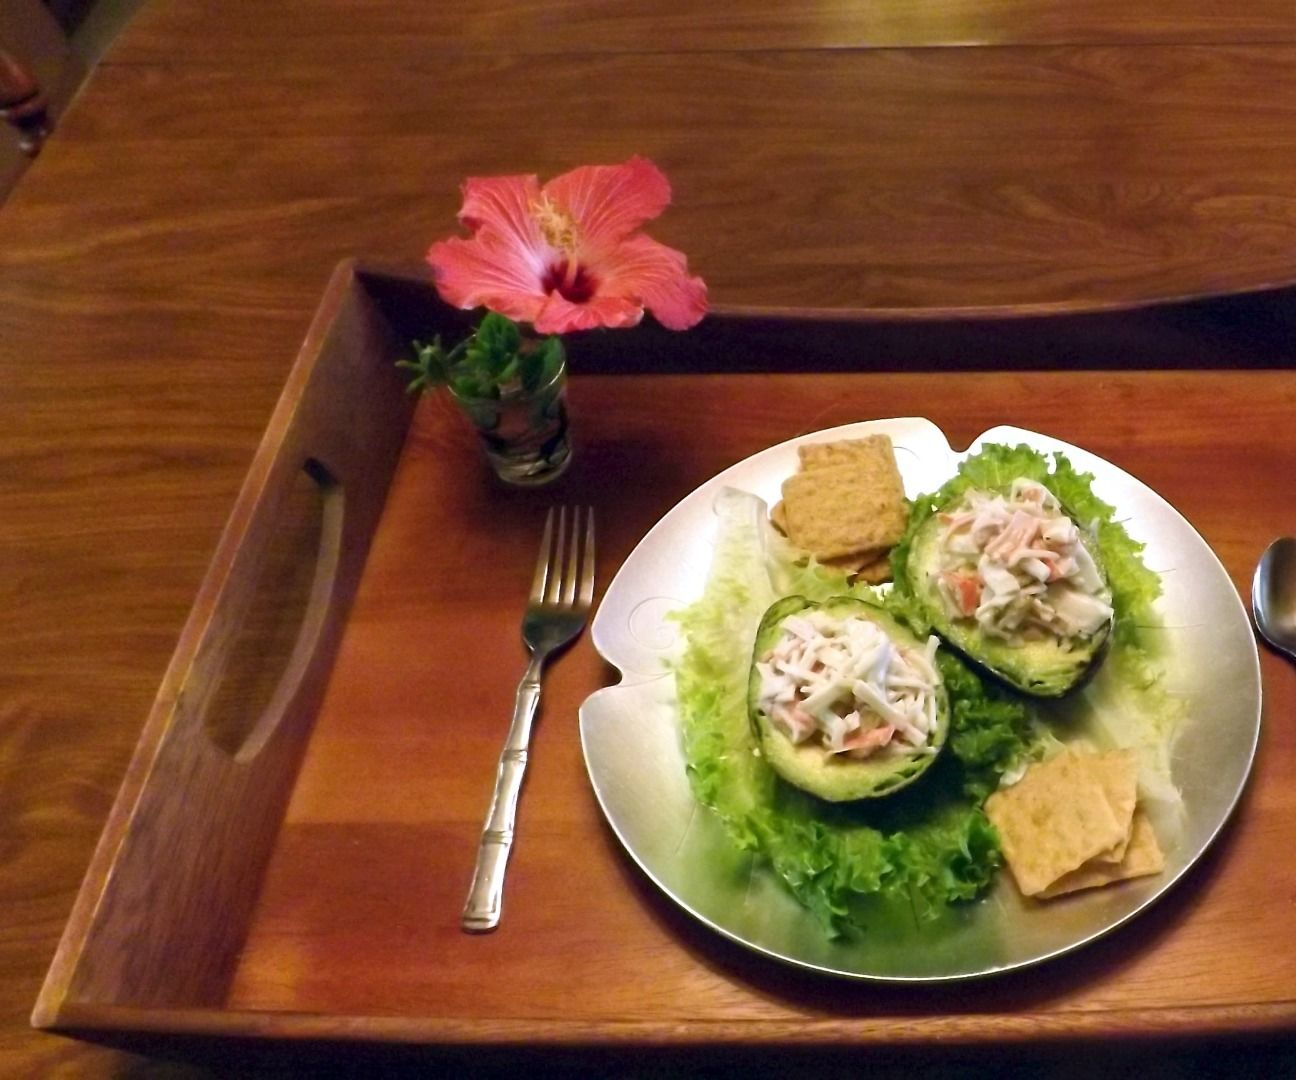 AVOCADO WITH SPICY IMITATION CRAB MEAT STUFFING